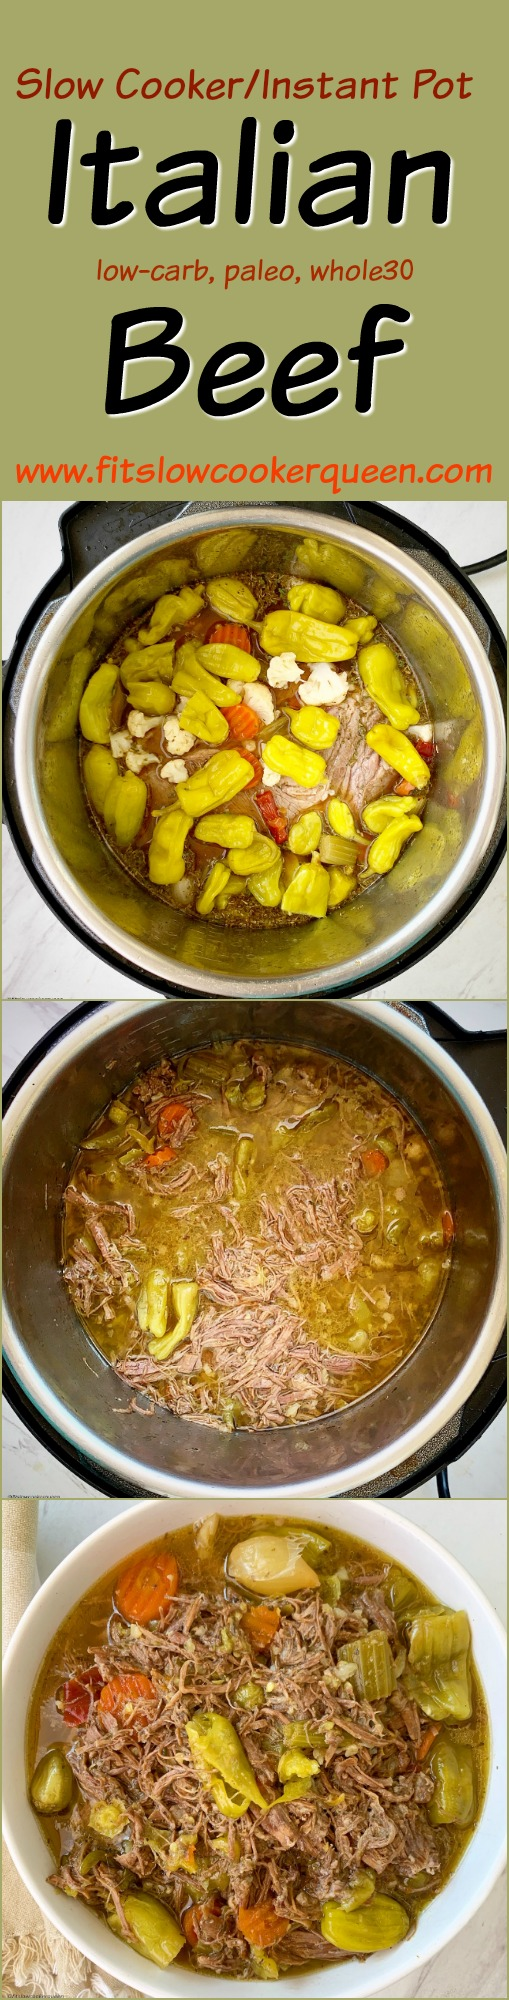 another pinterest pin for Slow Cooker_Instant Pot Italian Beef (Low-Carb, Paleo, Whole30)